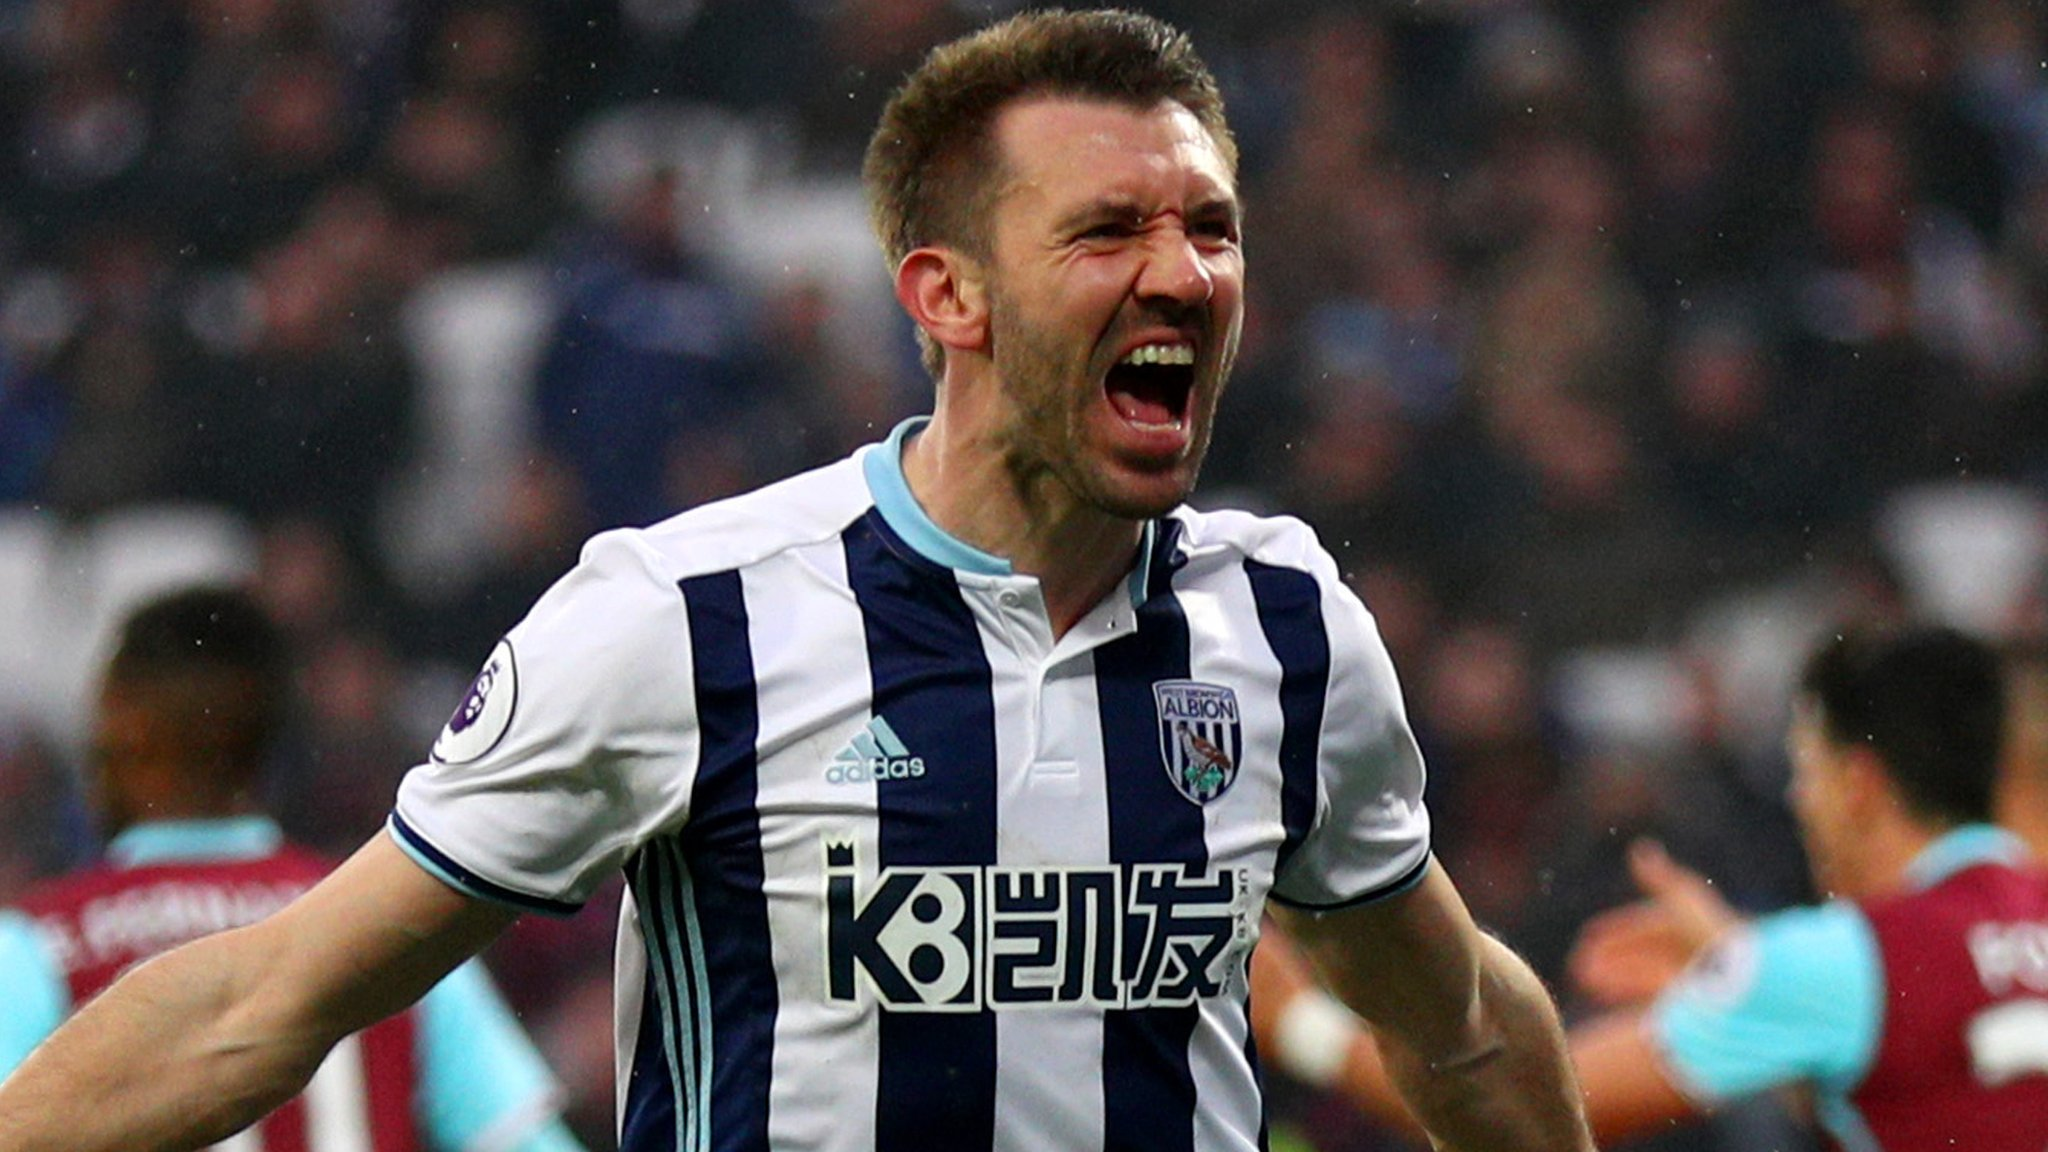 Gareth McAuley: Veteran West Brom defender aims to continue club career